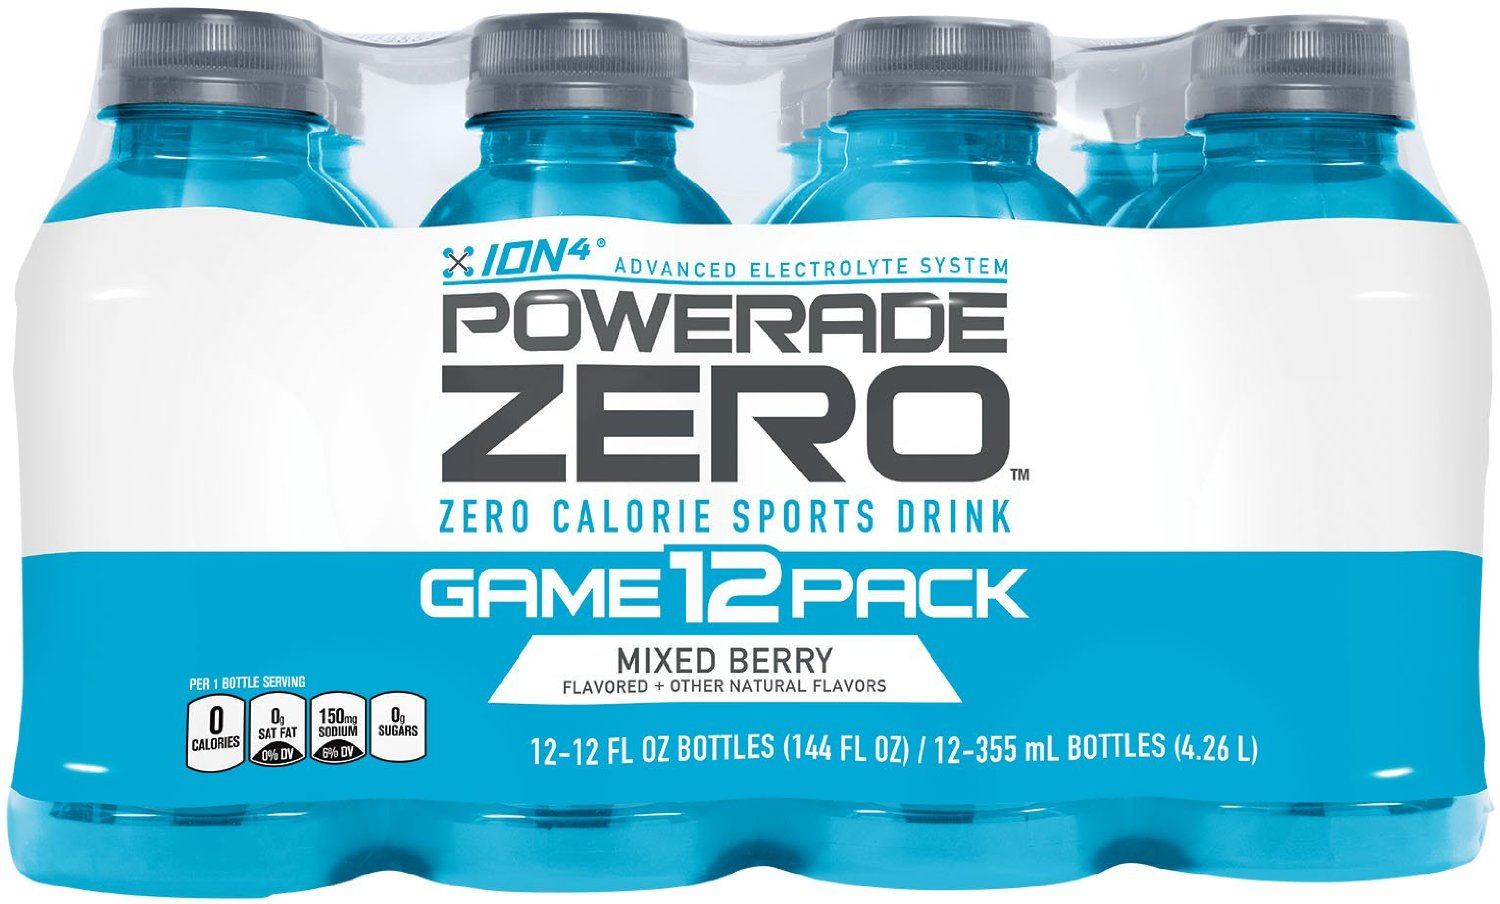 $3.83 12 Pack POWERADE ZERO Mixed Berry, 12 FL OZ Bottle